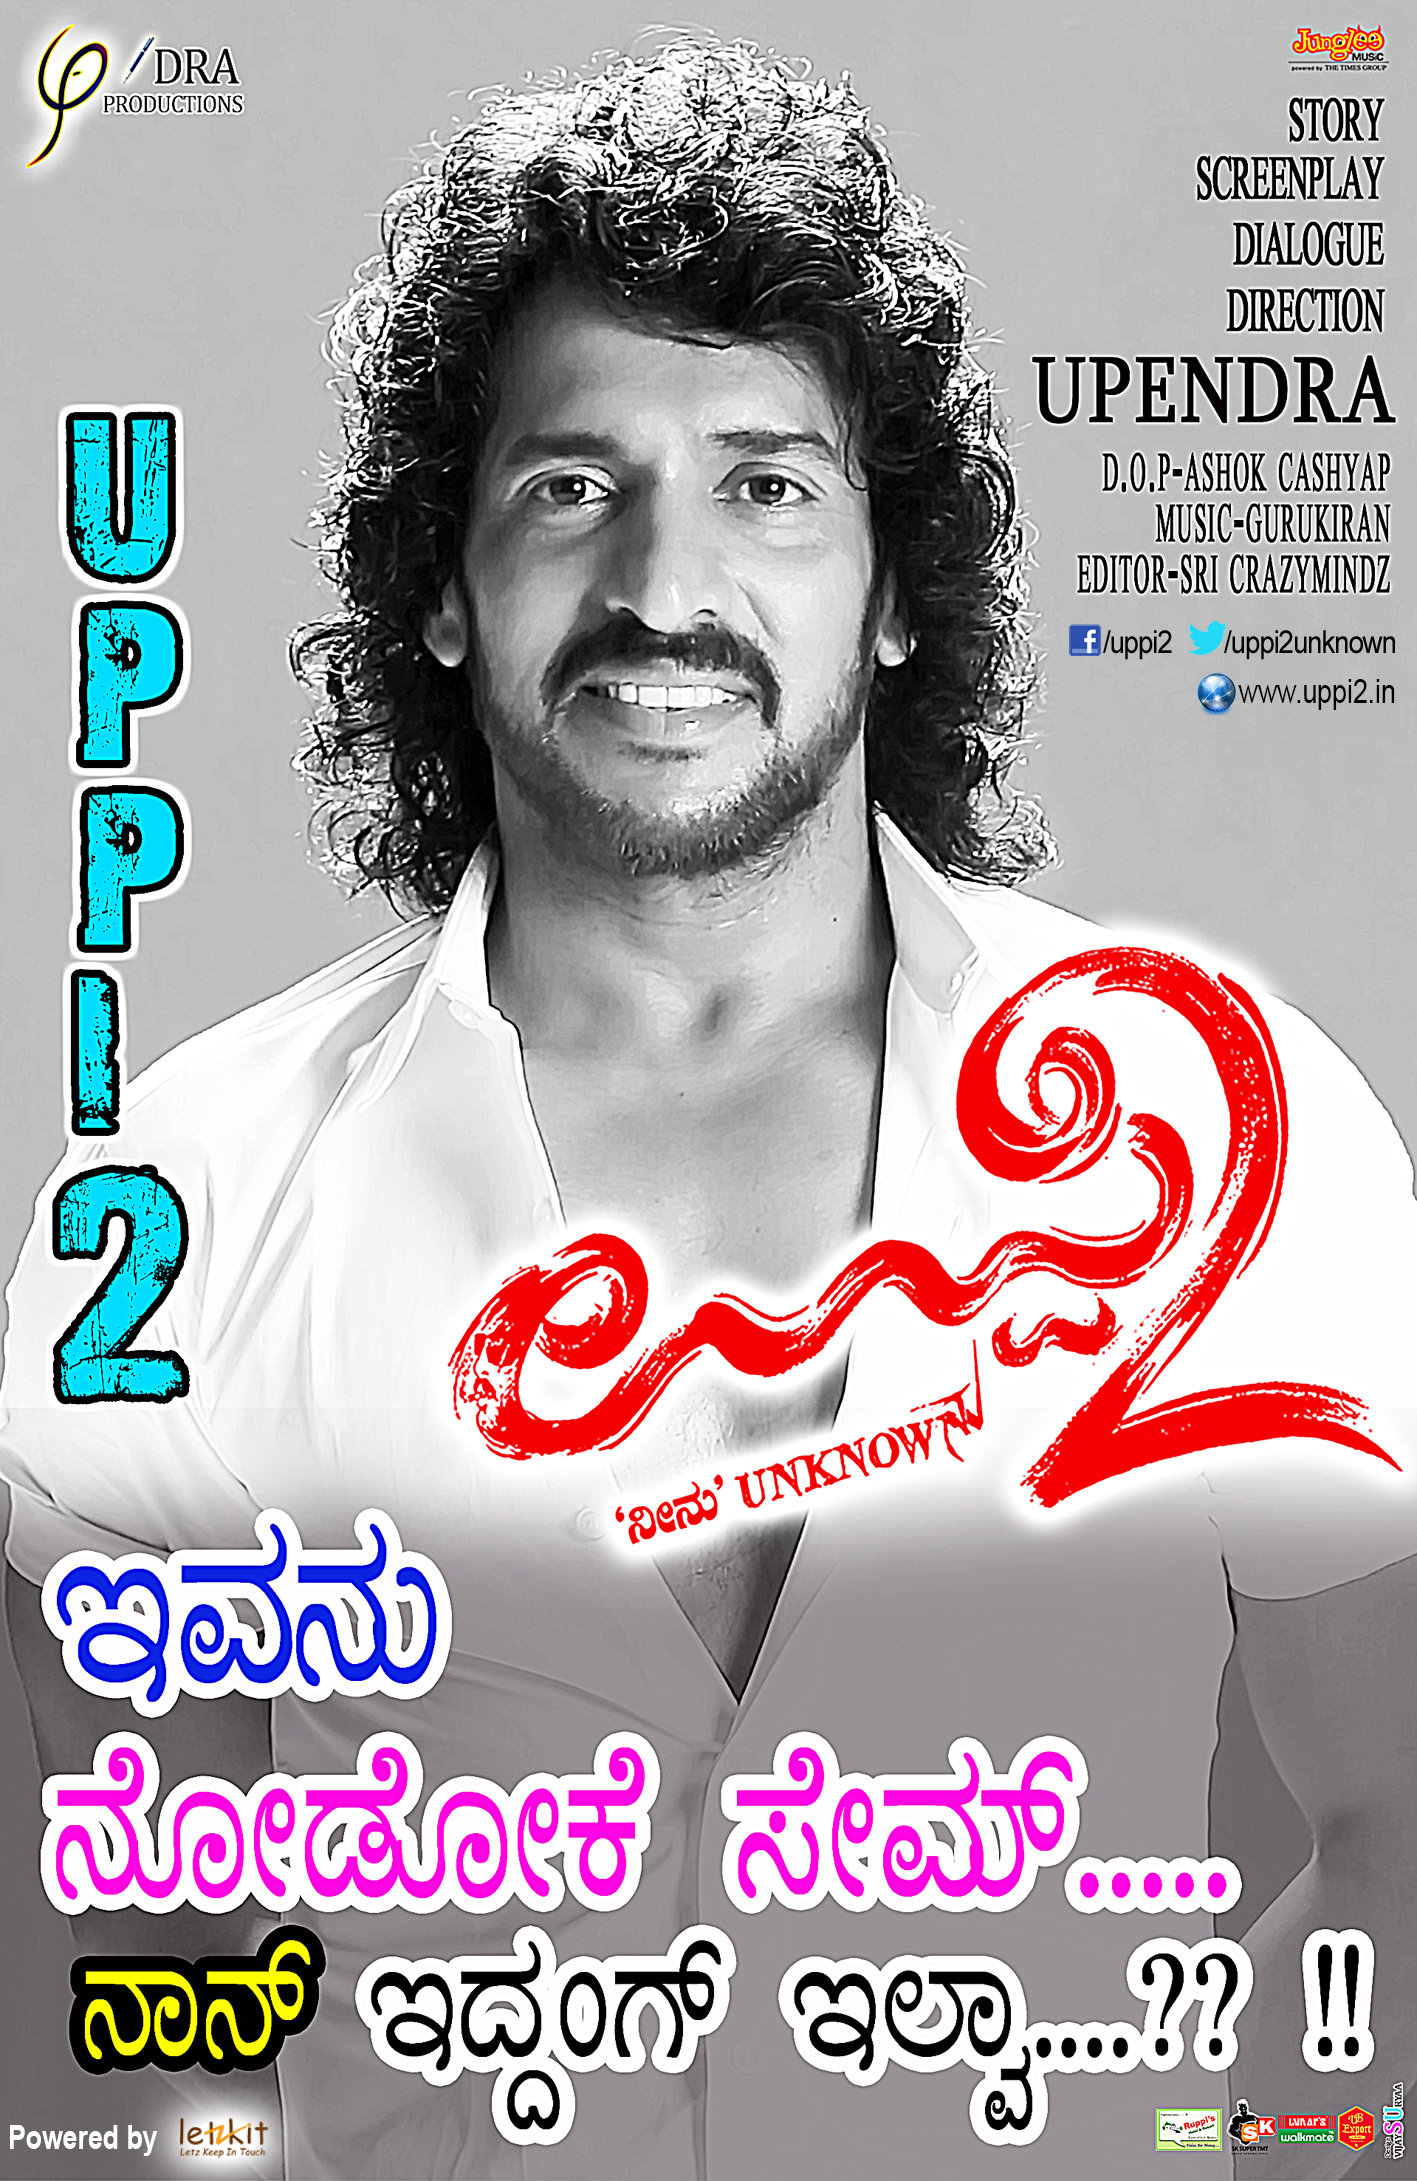 Upendra 2 Telugu Movie Free Download Utorrent 2016 - Perma-Curious :  powered by Doodlekit